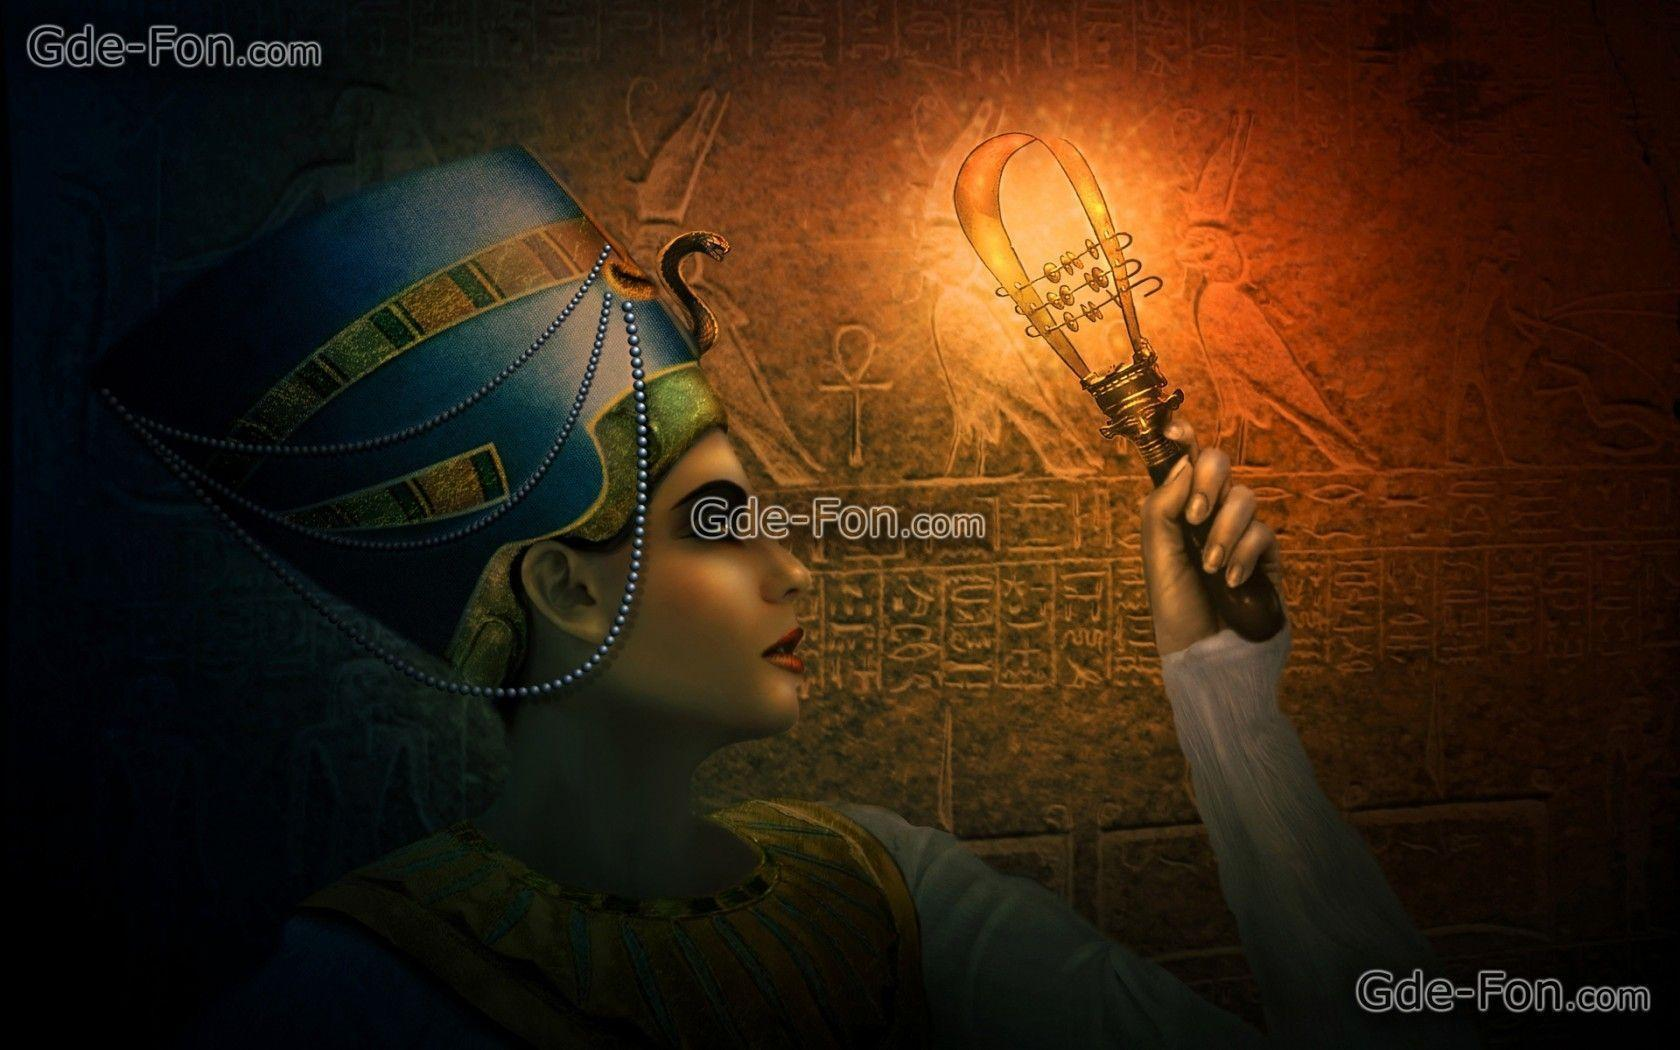 egypt desktop wallpaper - photo #30